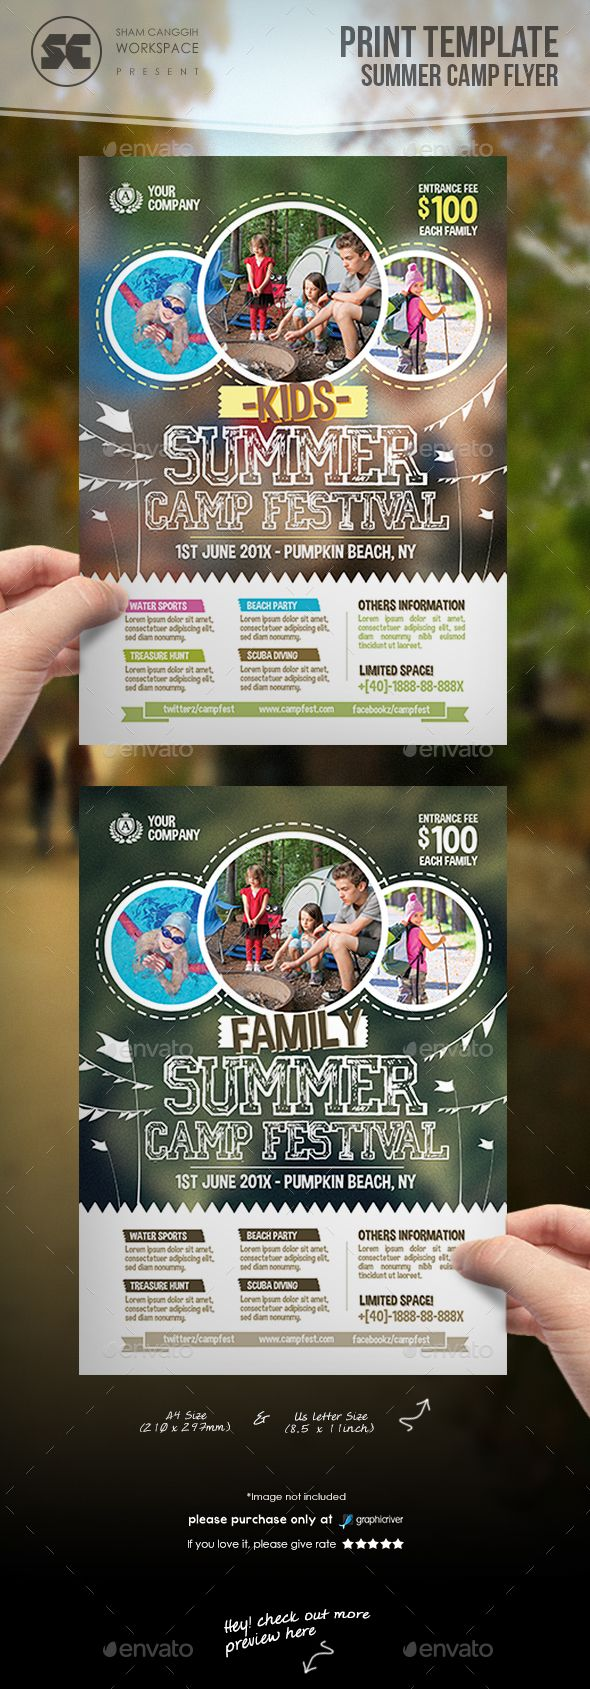 flyer templates for your church or spiritual event promotion buy summer camp flyer by shamcanggih on graphicriver flyer templates designed exclusively for summer camps event sports school activities family day